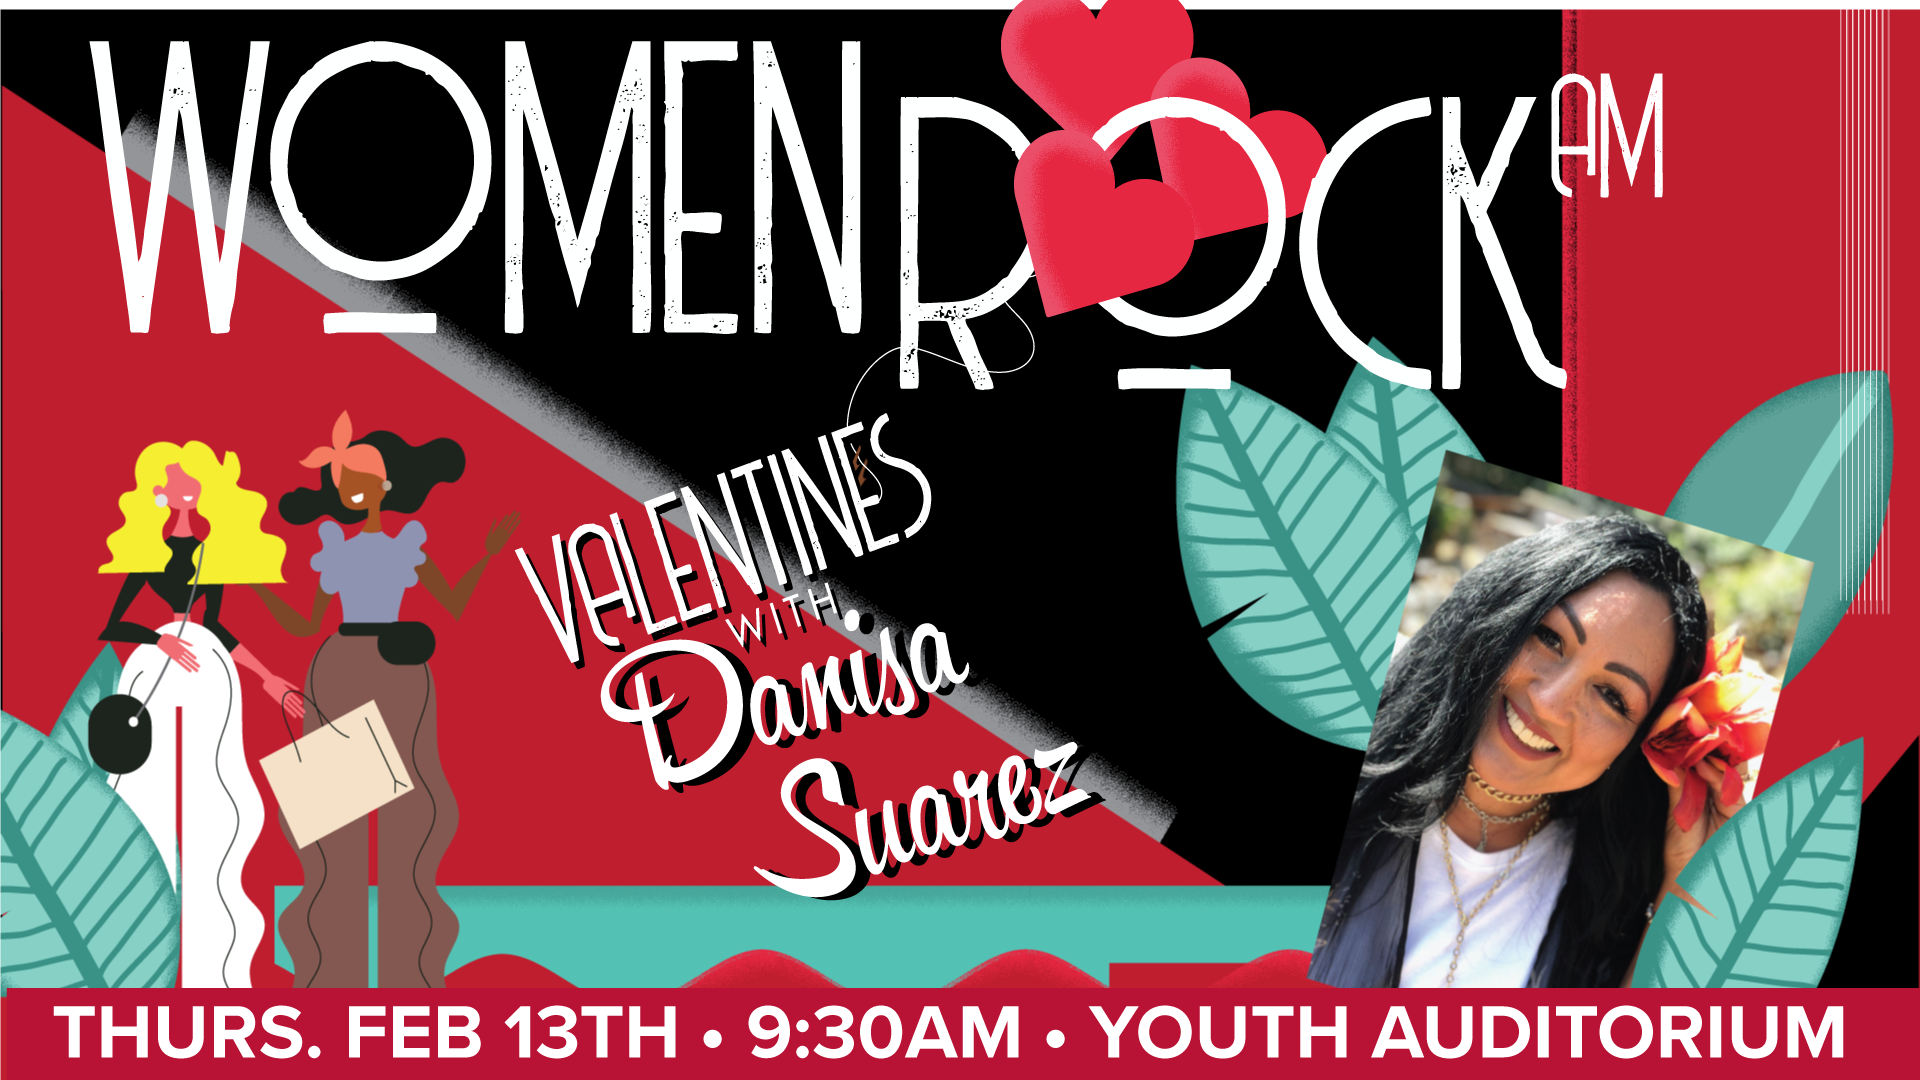 Women Rock AM Valentines Day Service with Danisa Suarez